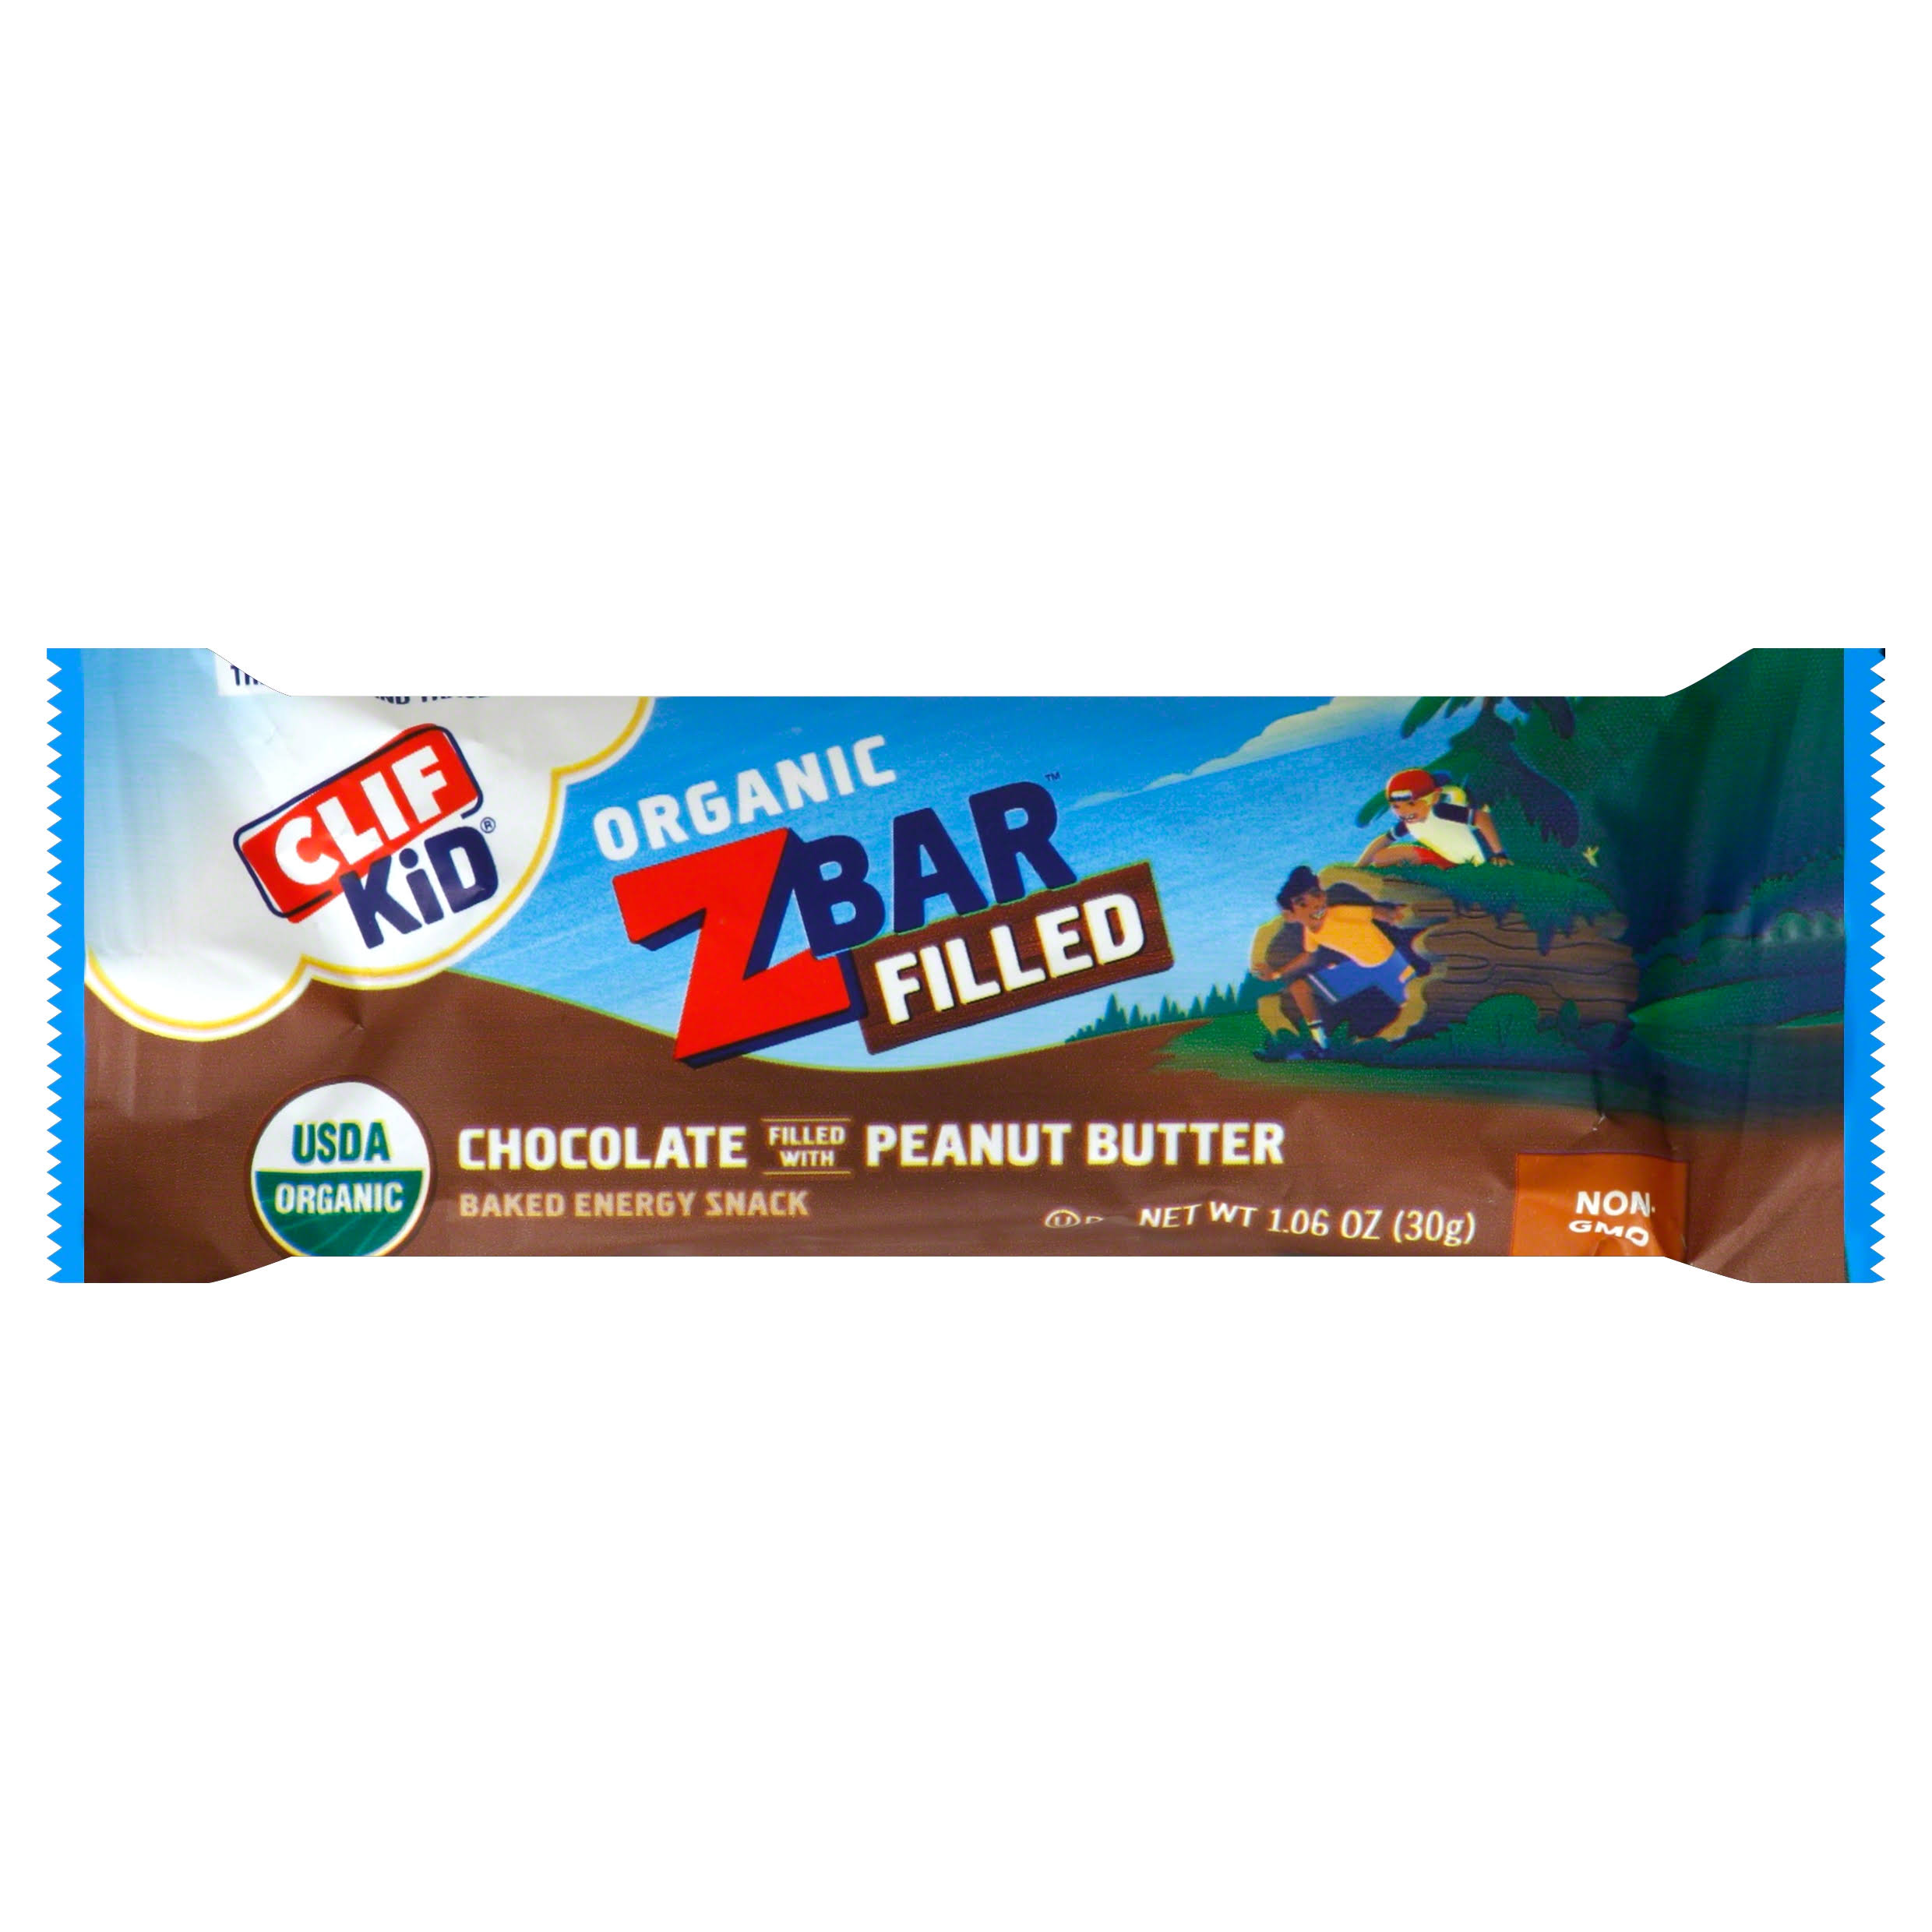 Clif Kid Z Bar, Filled, Organic, Chocolate Filled with Peanut Butter - 1.06 oz